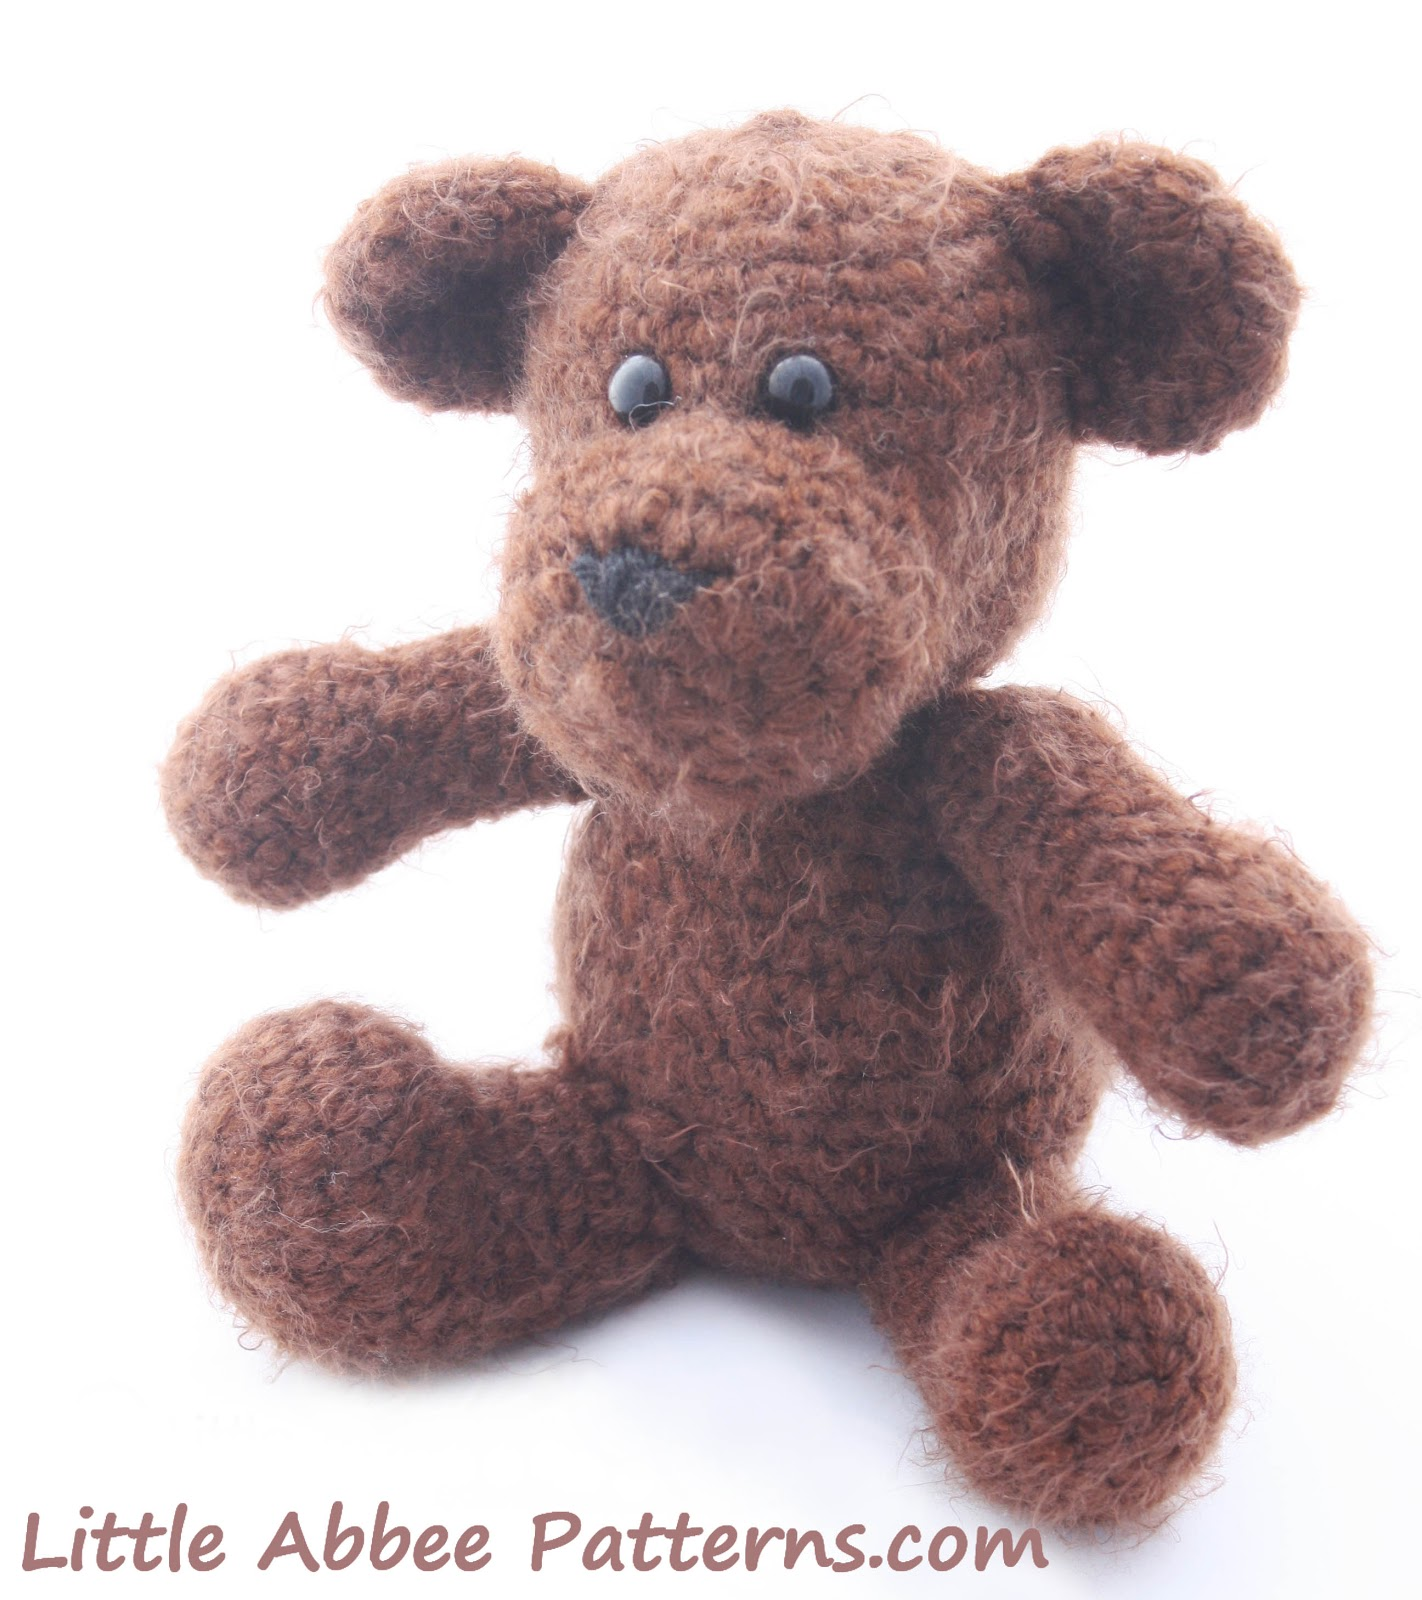 Free Crochet Patterns For Teddy Bear Sweaters : Little Abbee: Teddy Bear and Sweater FREE Pattern